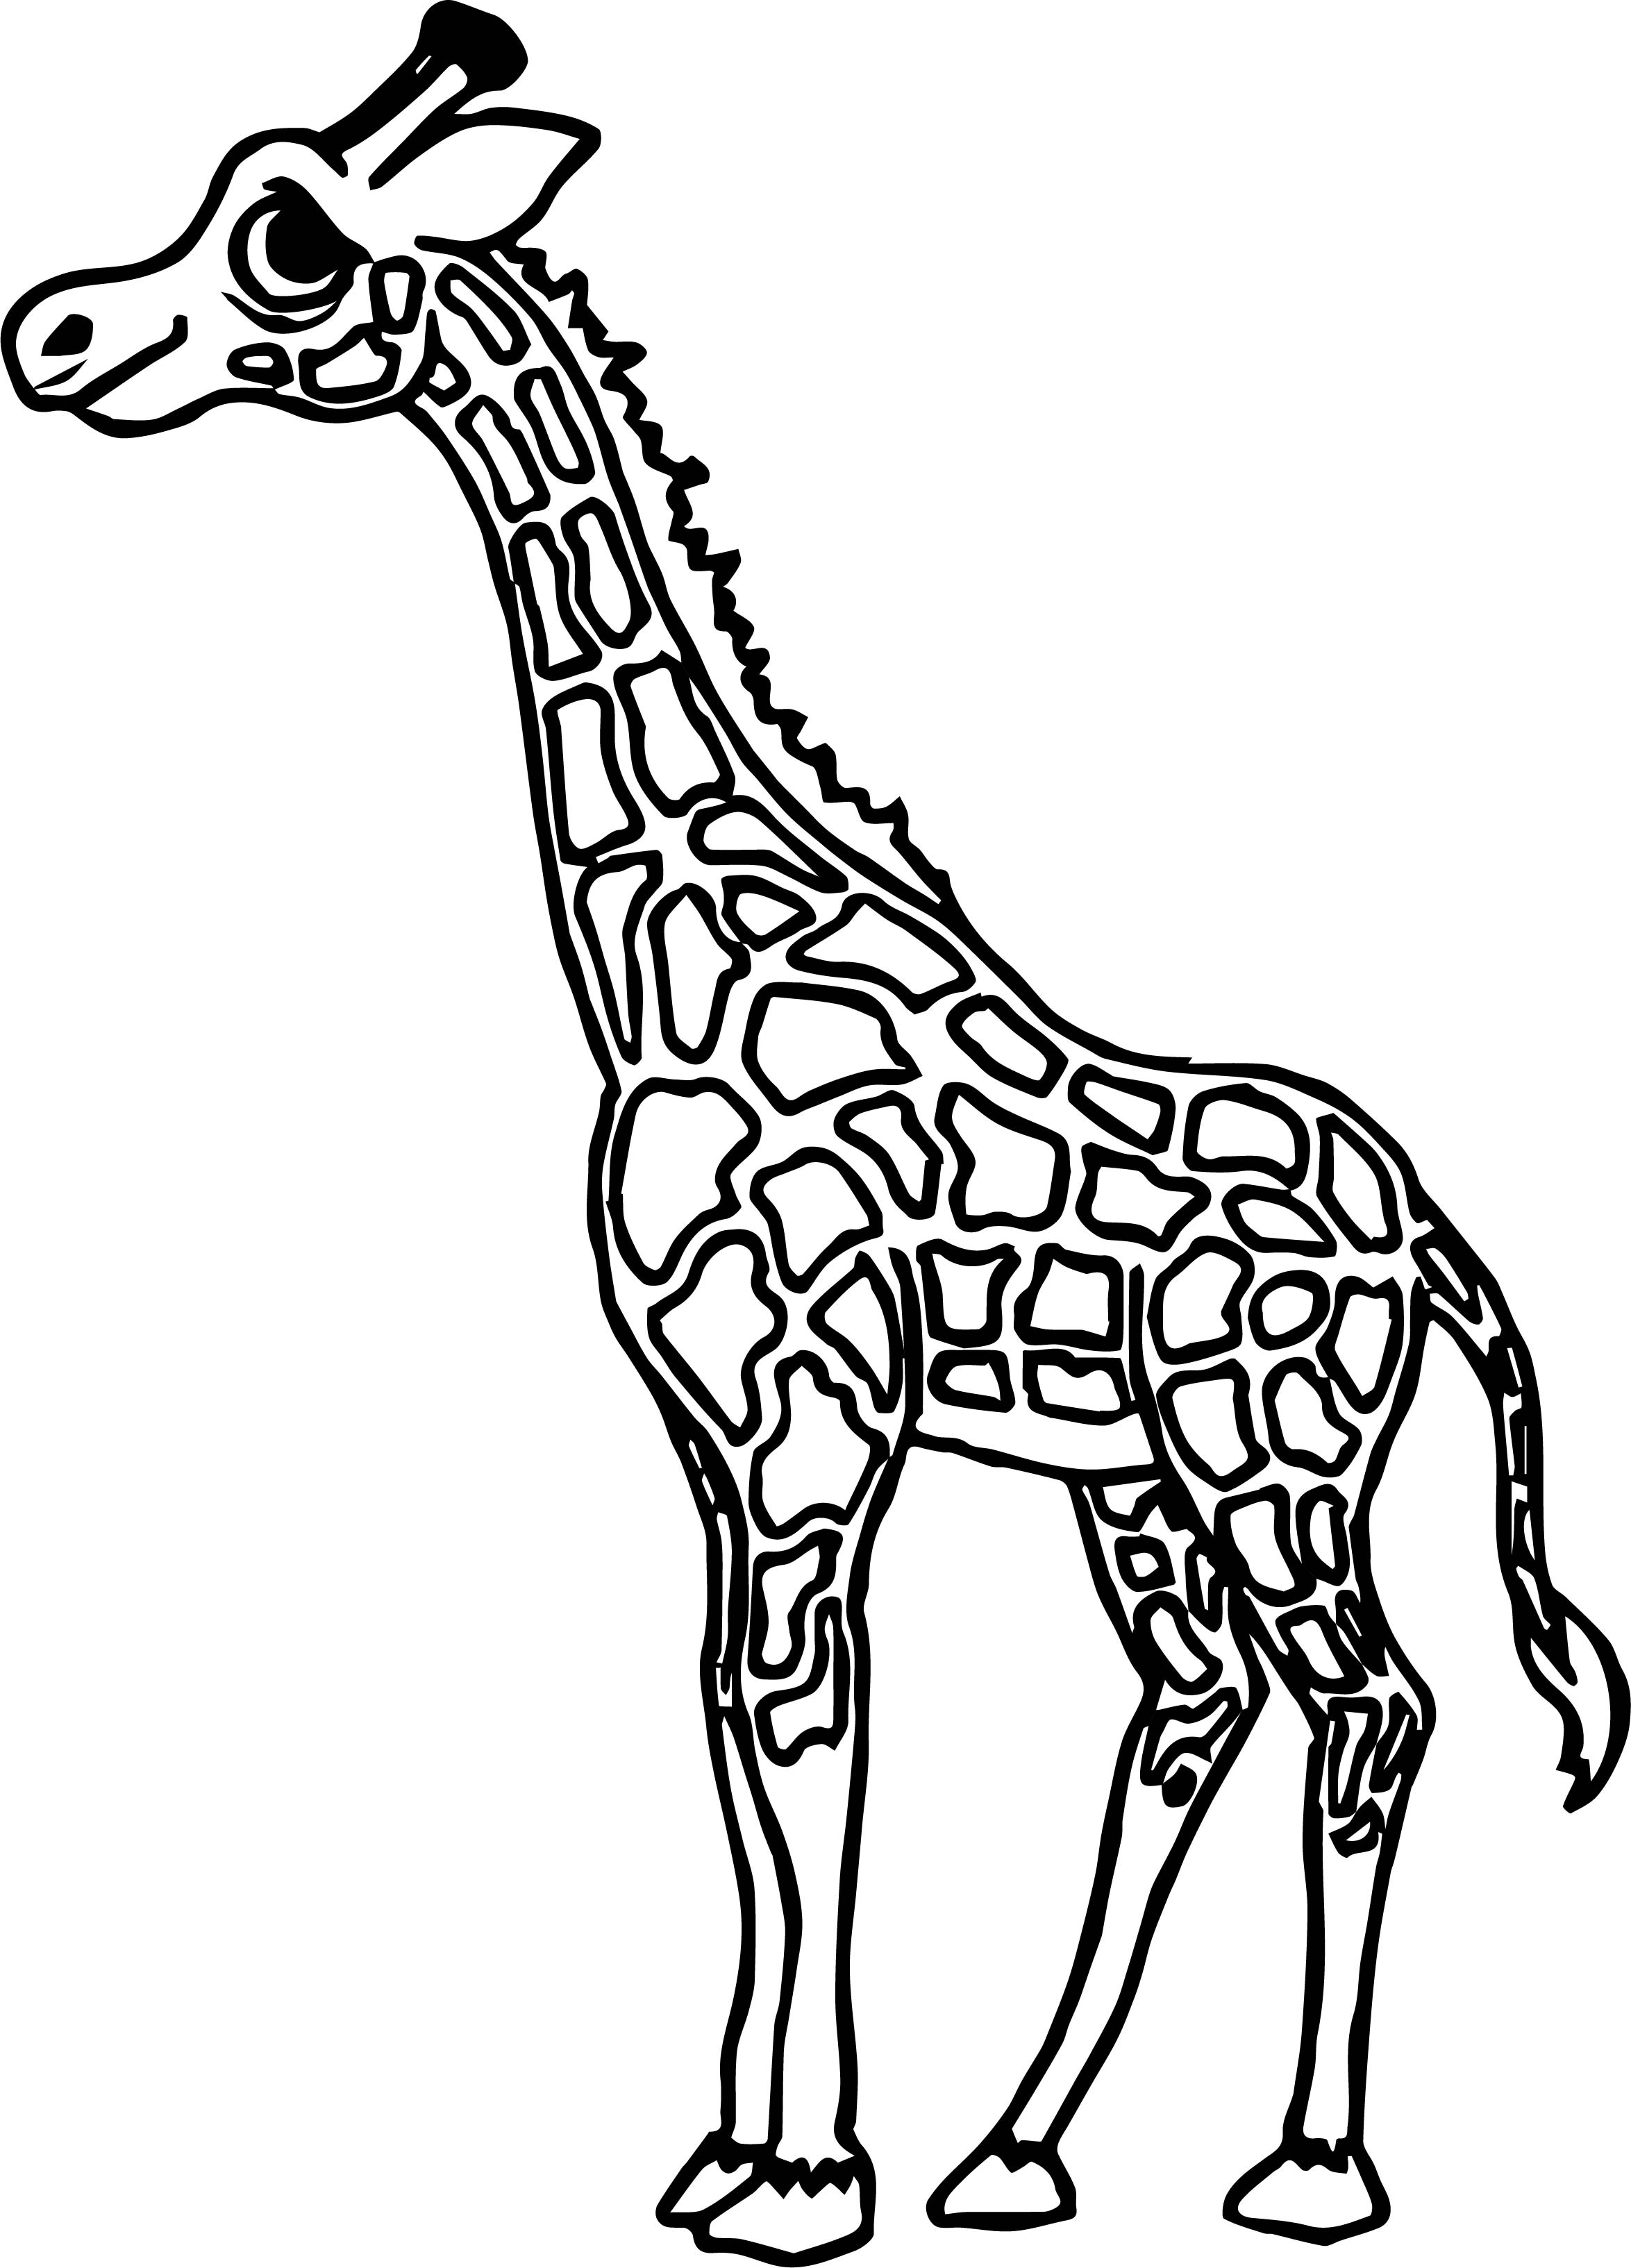 Giraffe Thinking Coloring Page